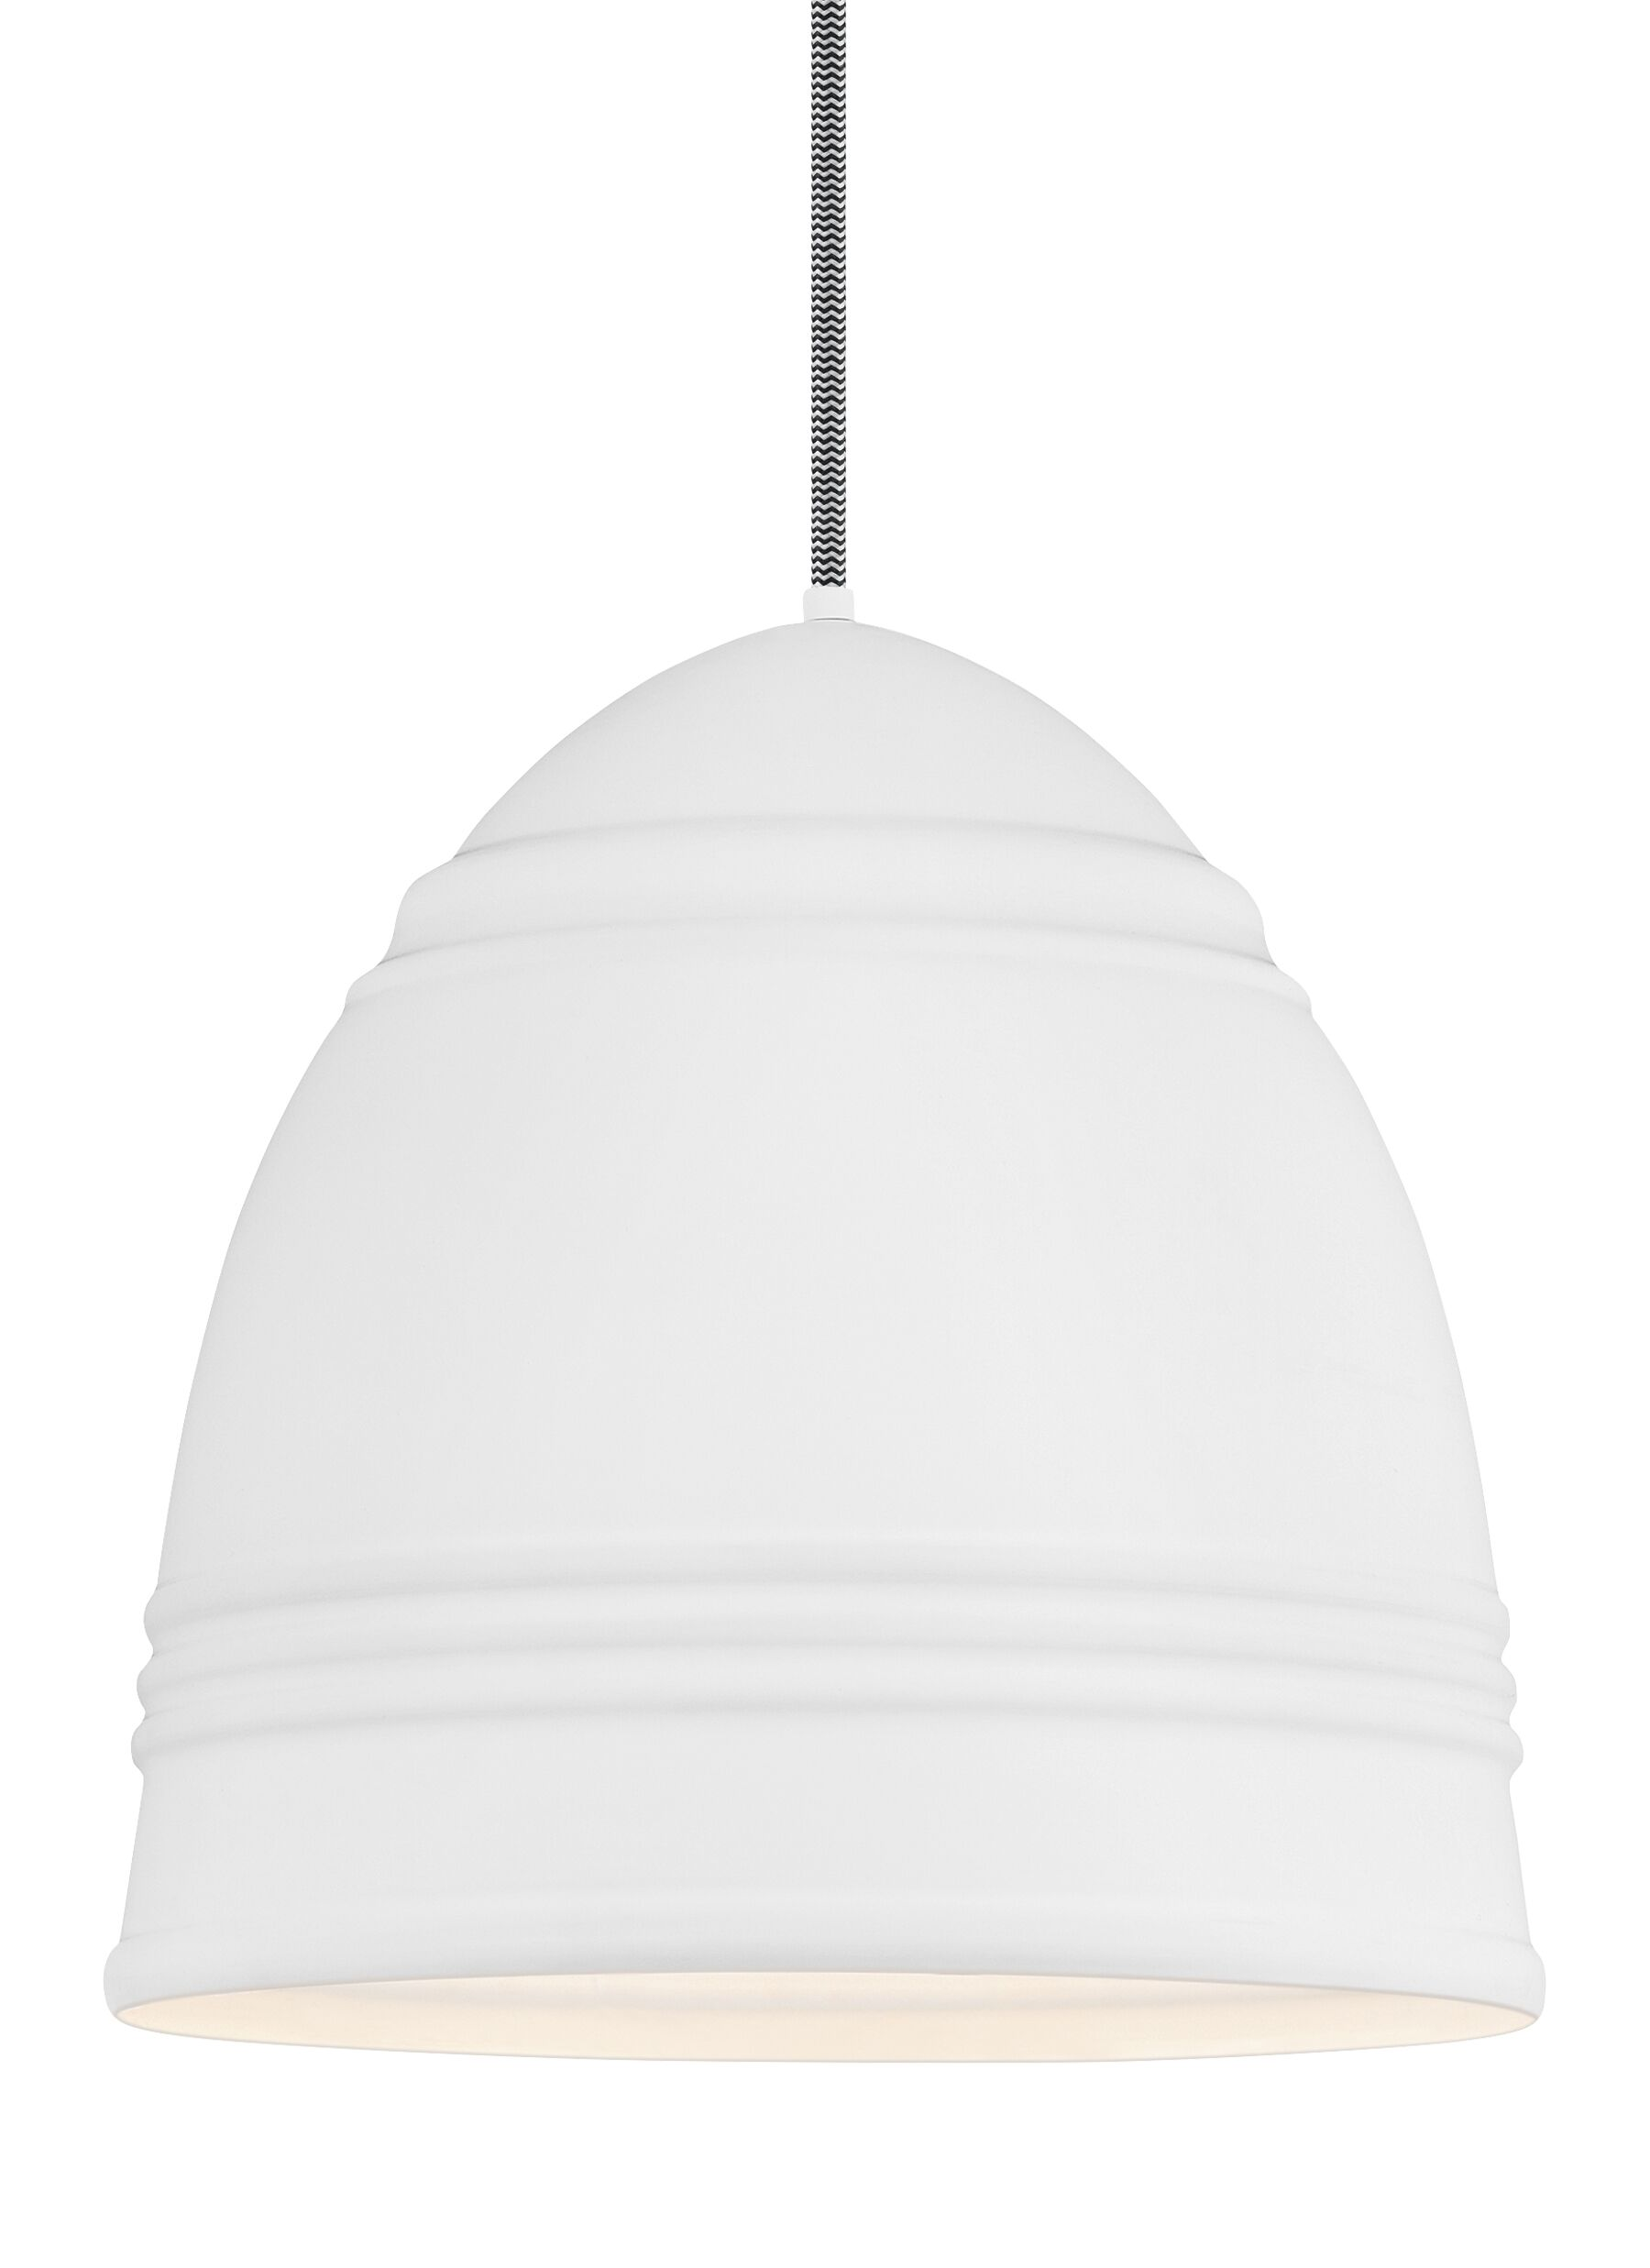 Else 3-Light Bell Pendant Shade Color: Rubberized White/White Interior